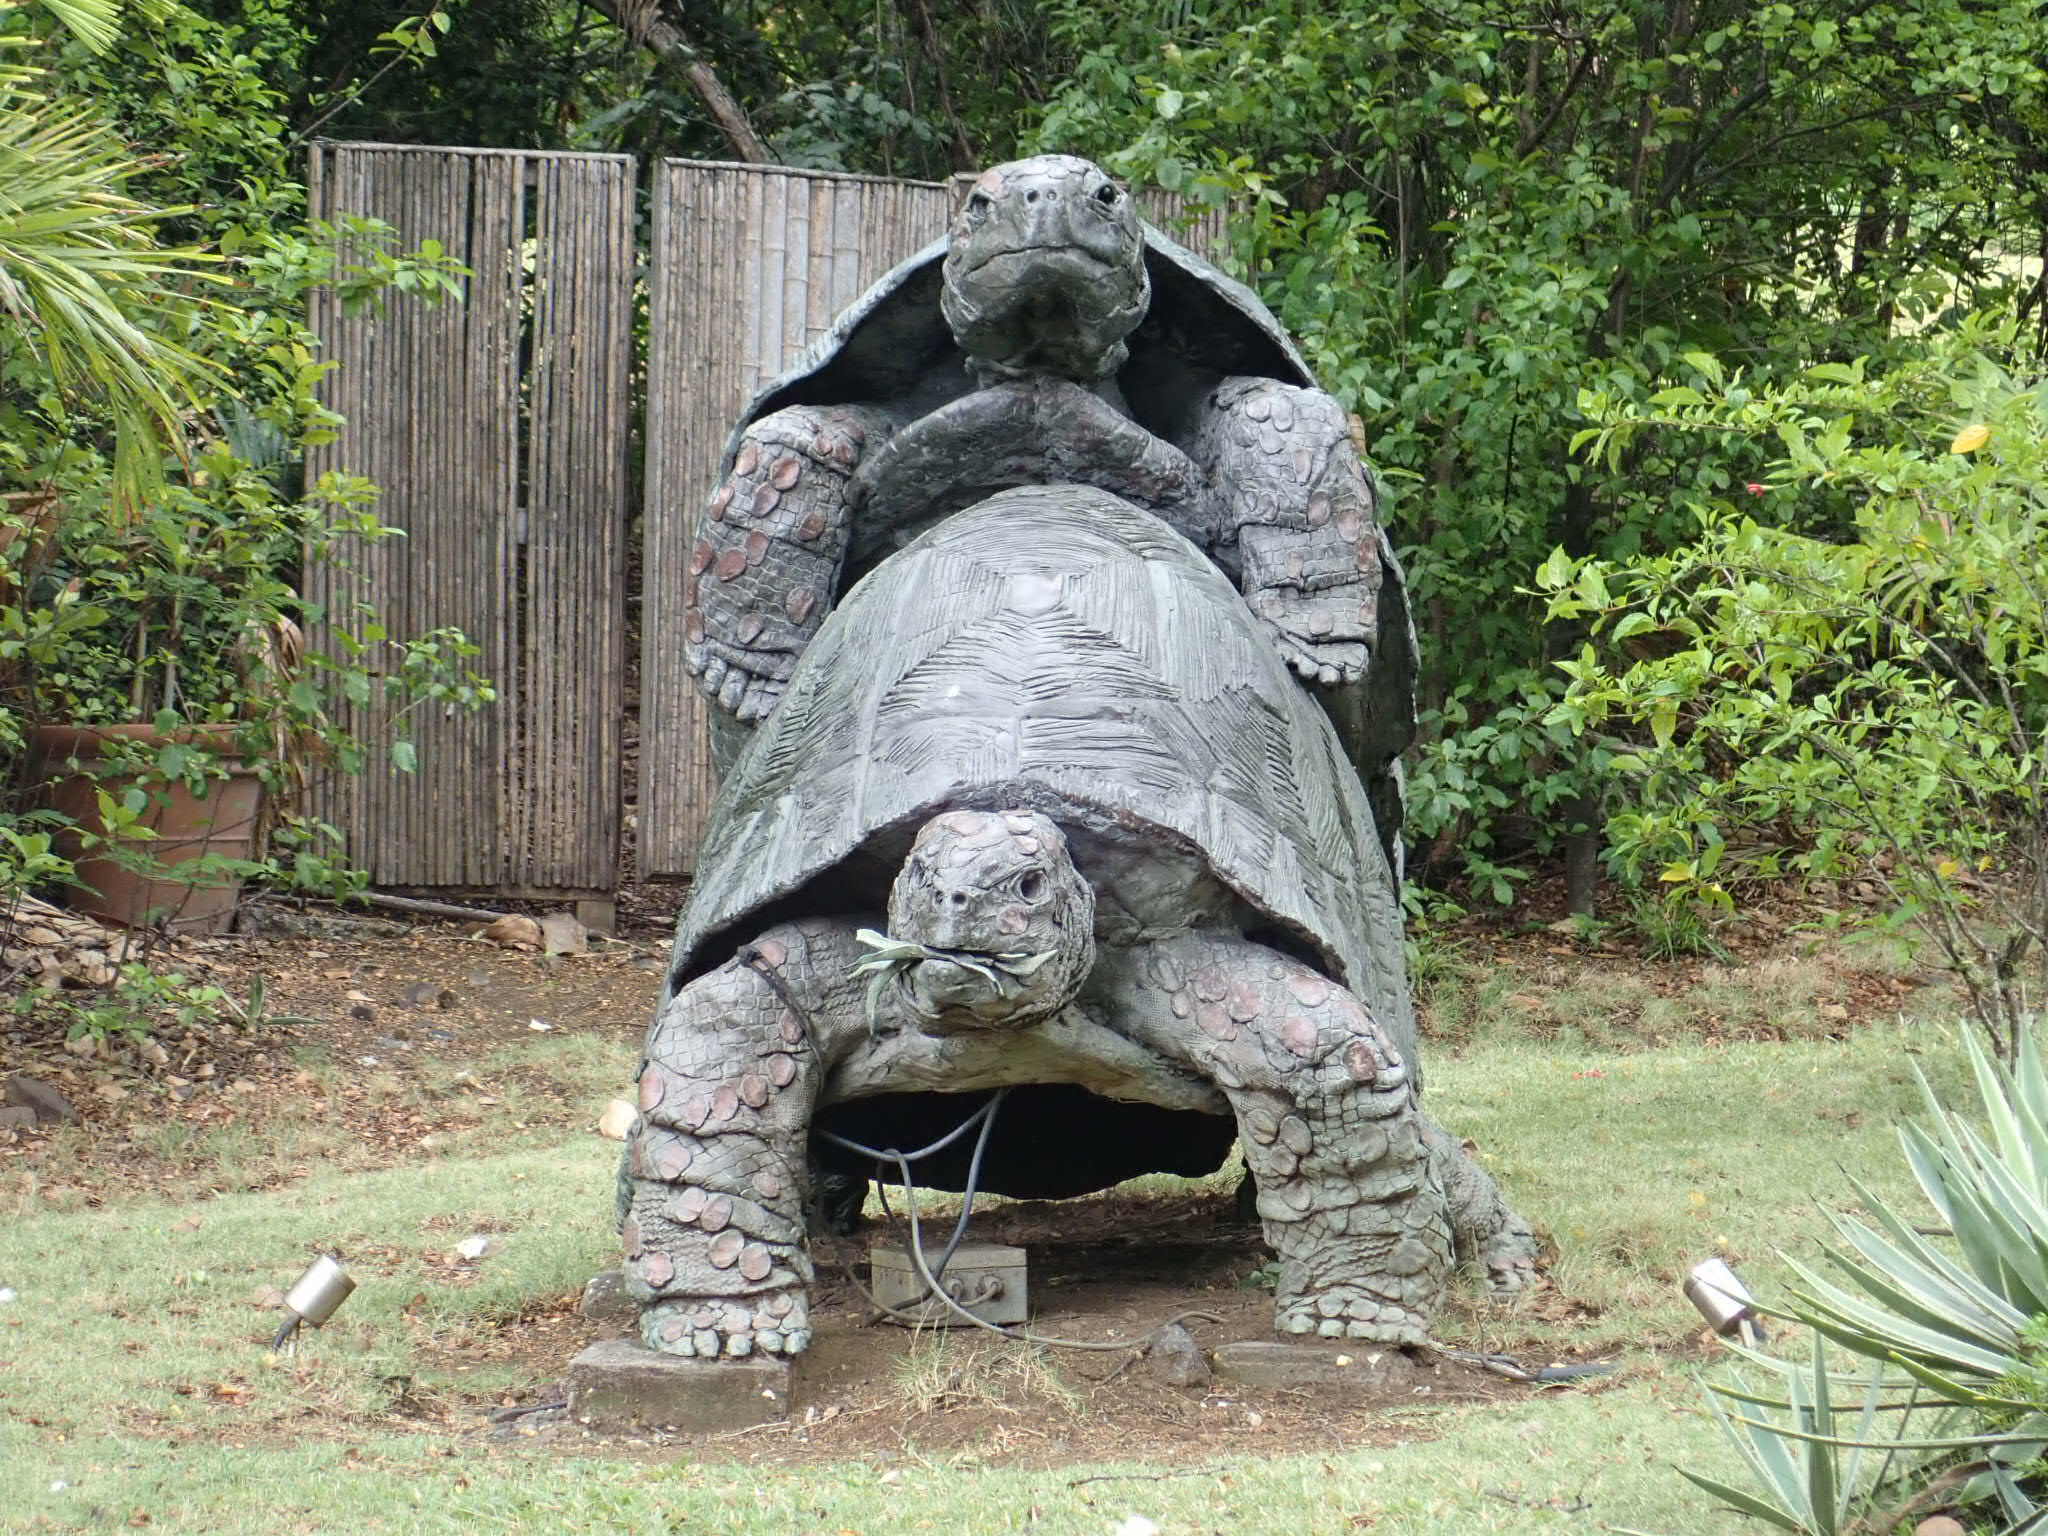 Mustique's humping tortoises statue!